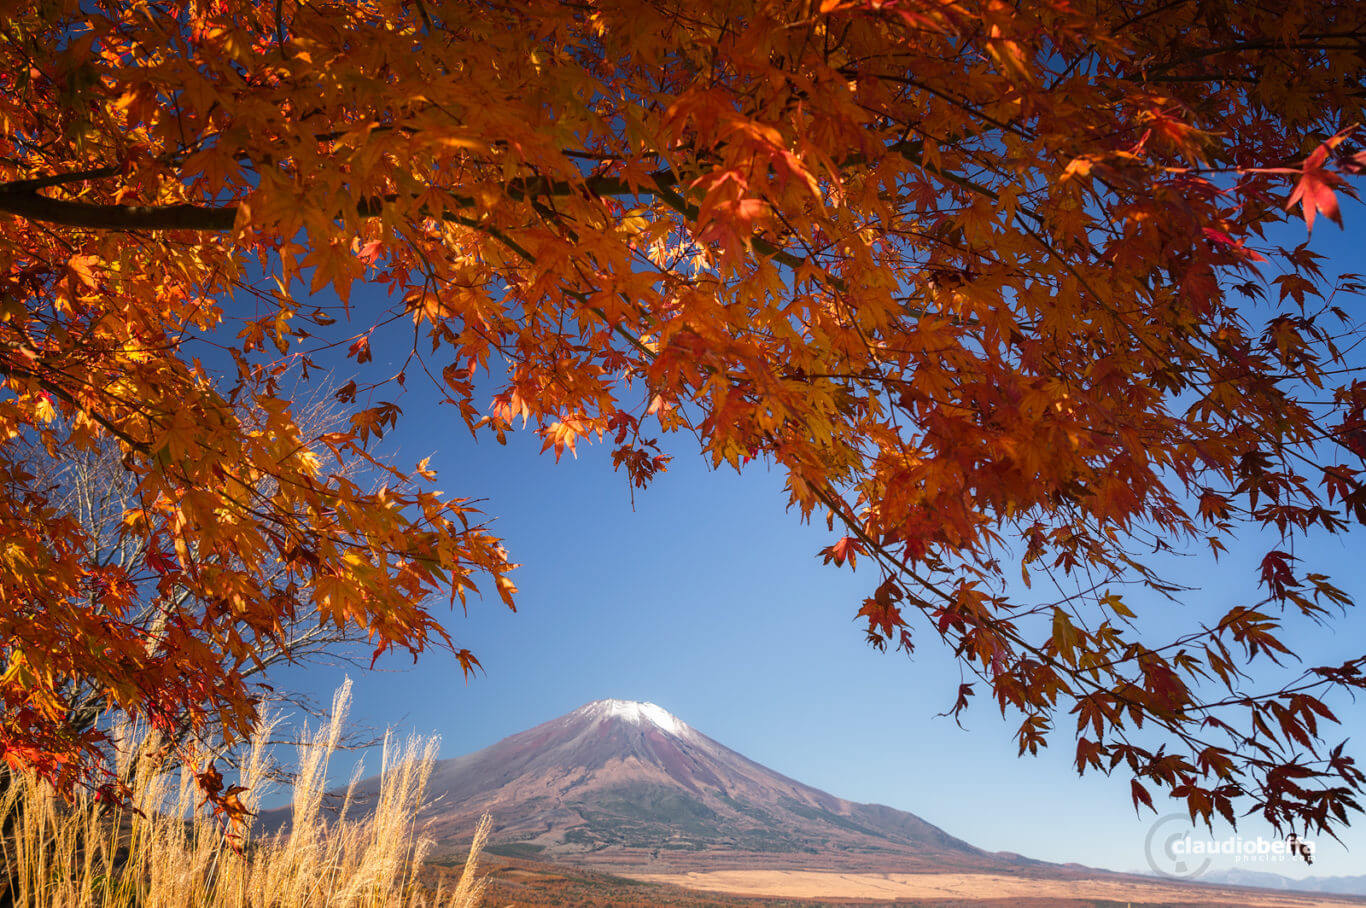 Mount Fuji, Fuji, Japan, Chubu, autumn, autumn wonderland, fall, momiji, susuki, red, orange, travel, phoclab